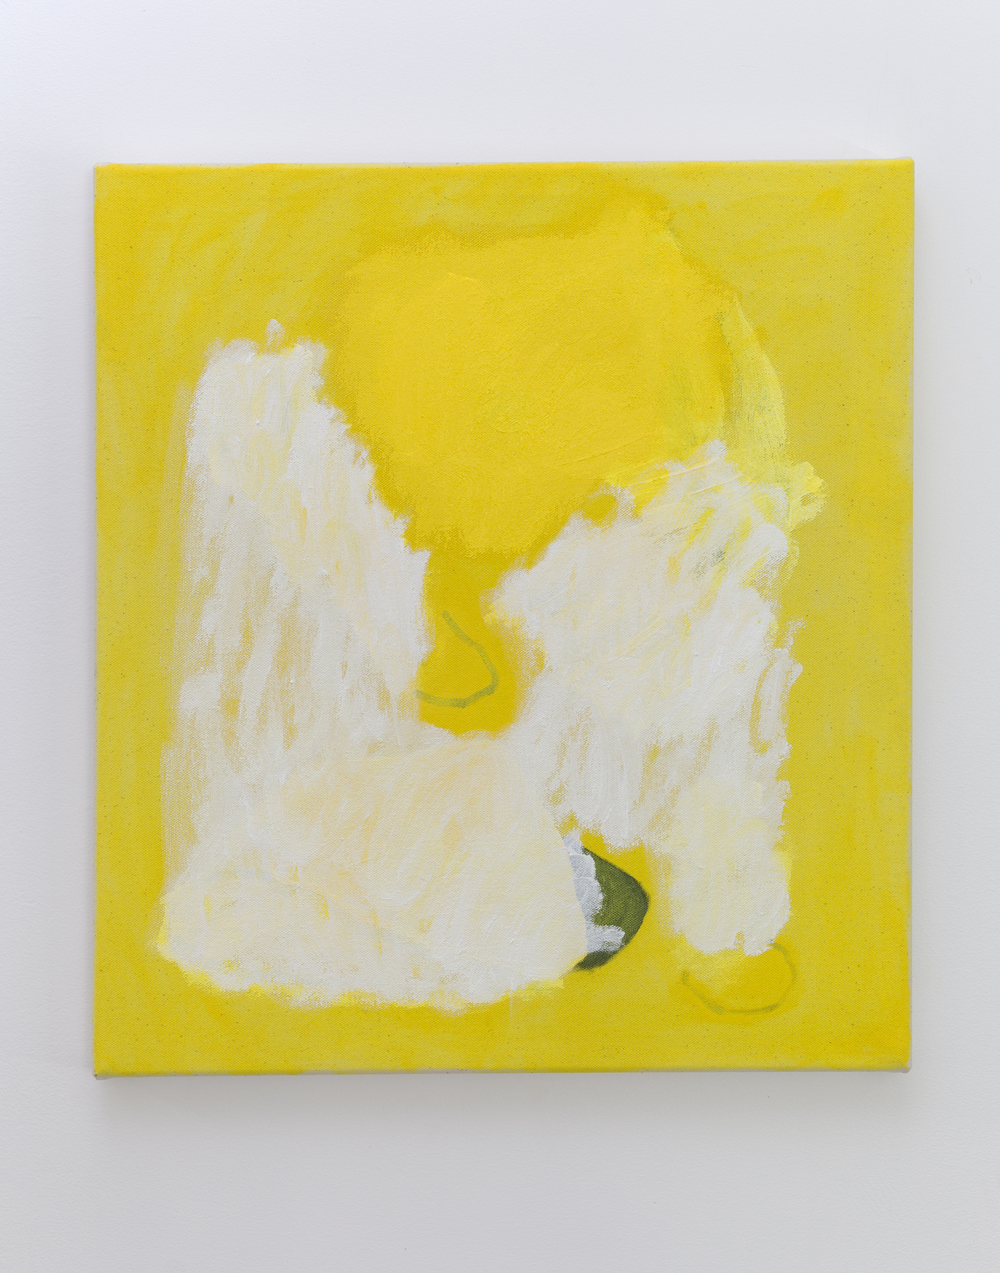 Eleanor Louise Butt, Untitled, 2016. Oil on canvas 46cm x 41.5cm